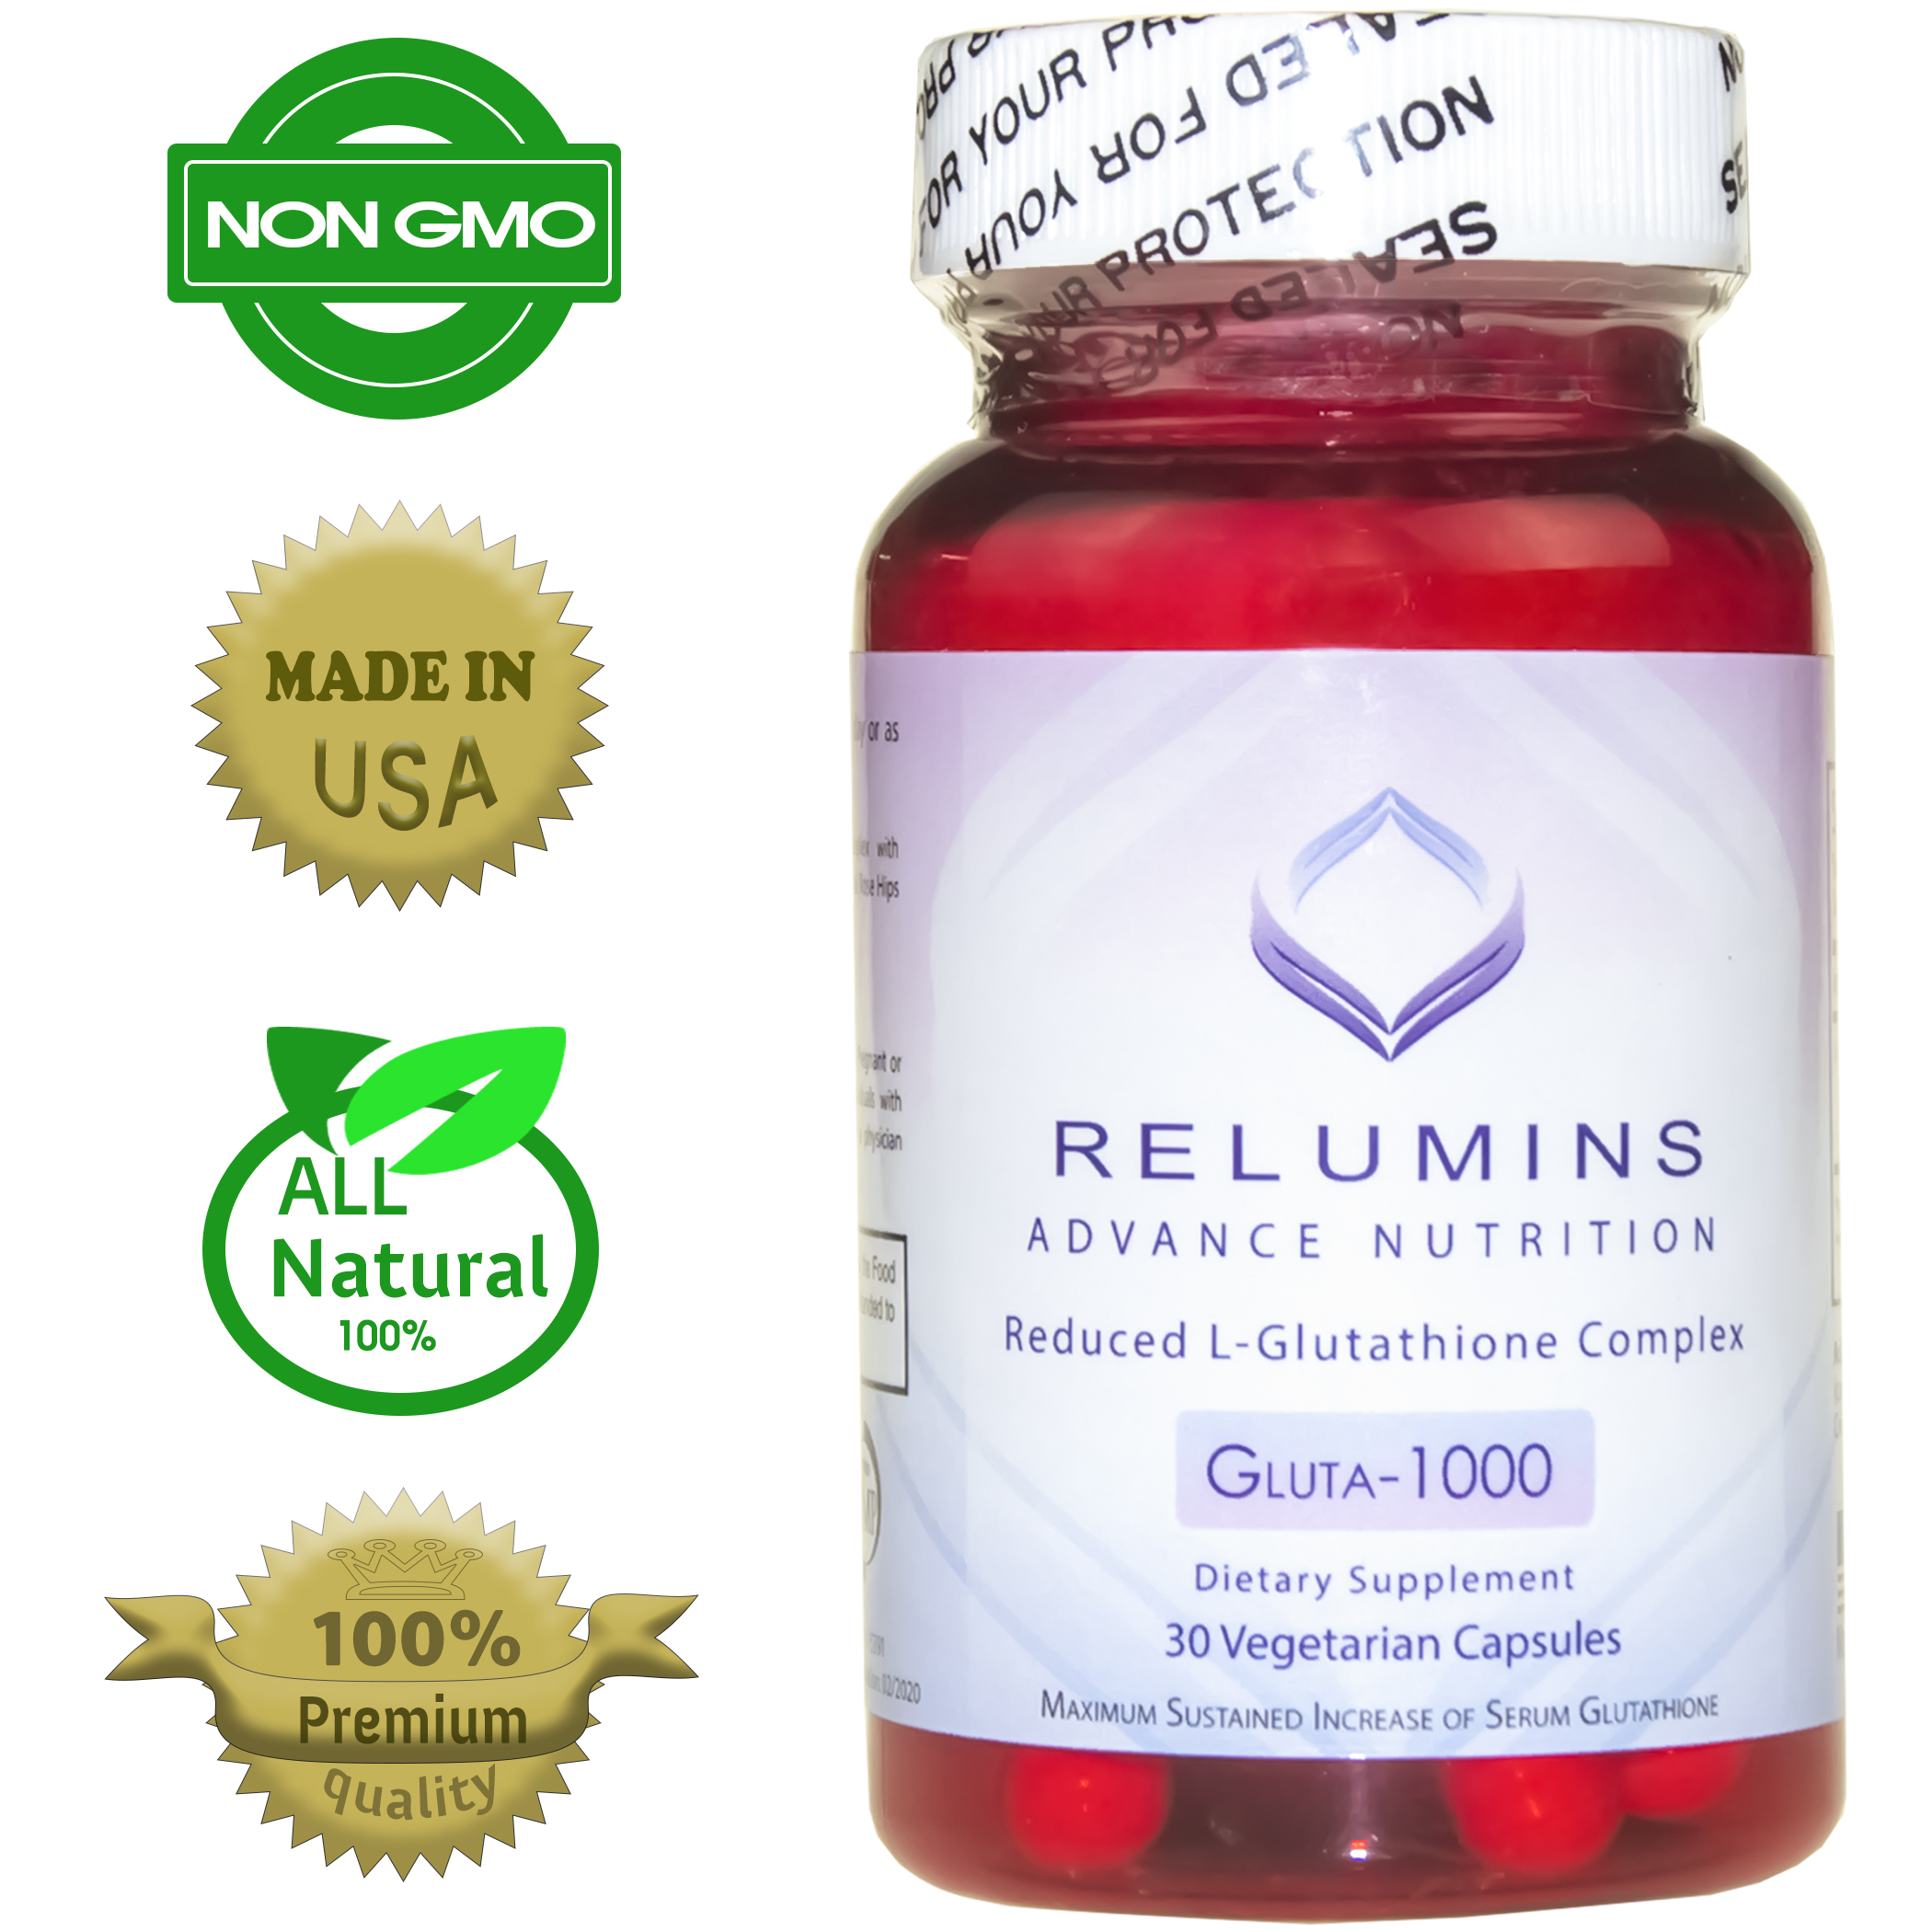 authentic relumins advance nutrition reduced l glutathione complex gluta 1000. Black Bedroom Furniture Sets. Home Design Ideas